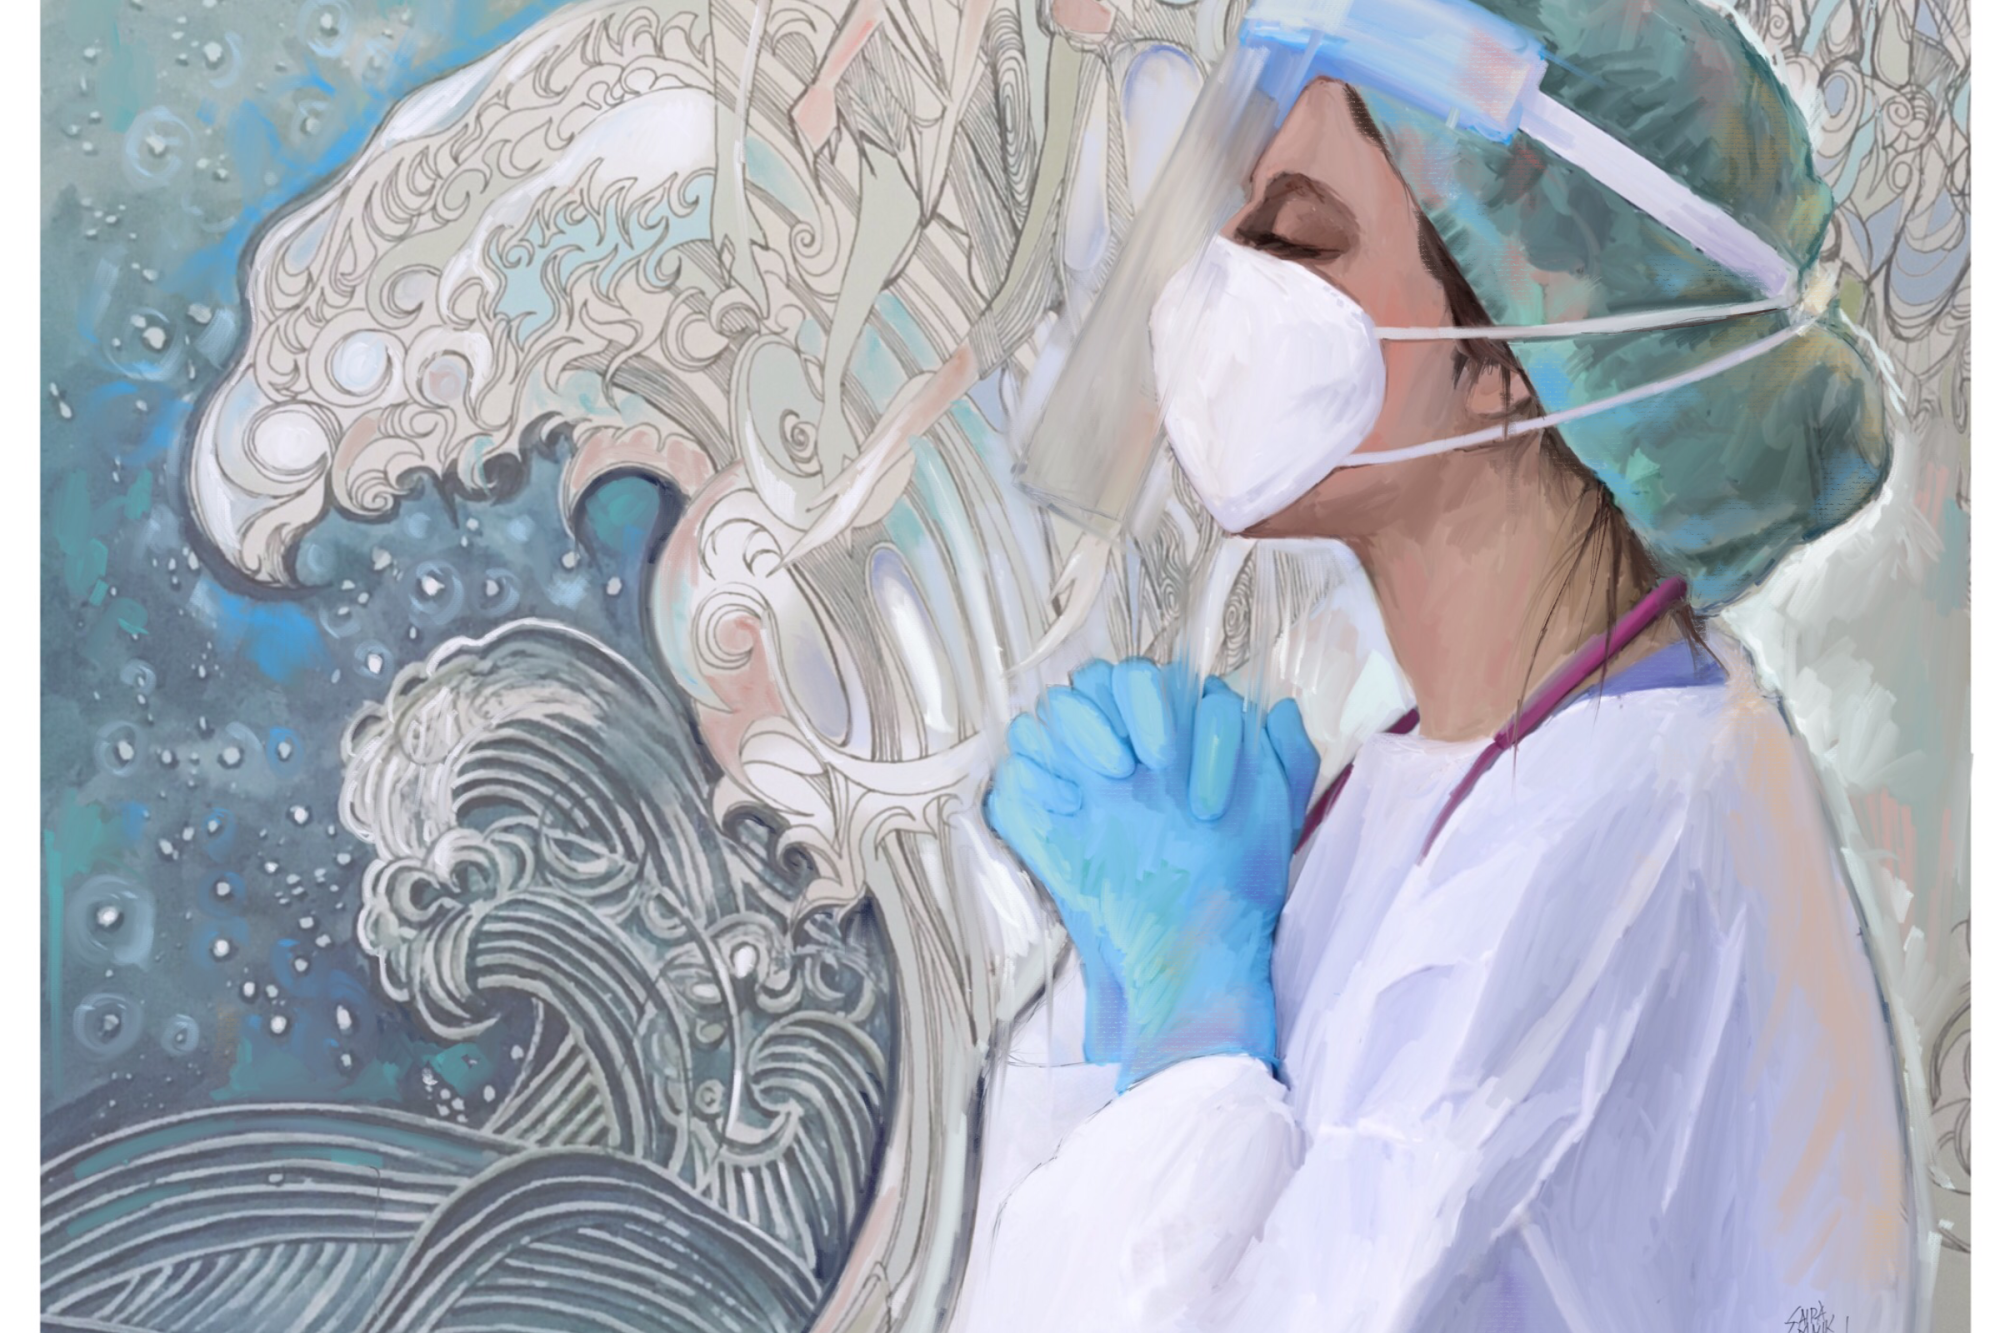 Artwork by Dr. Saira Malik Rahman depicting a physician with hands in prayer